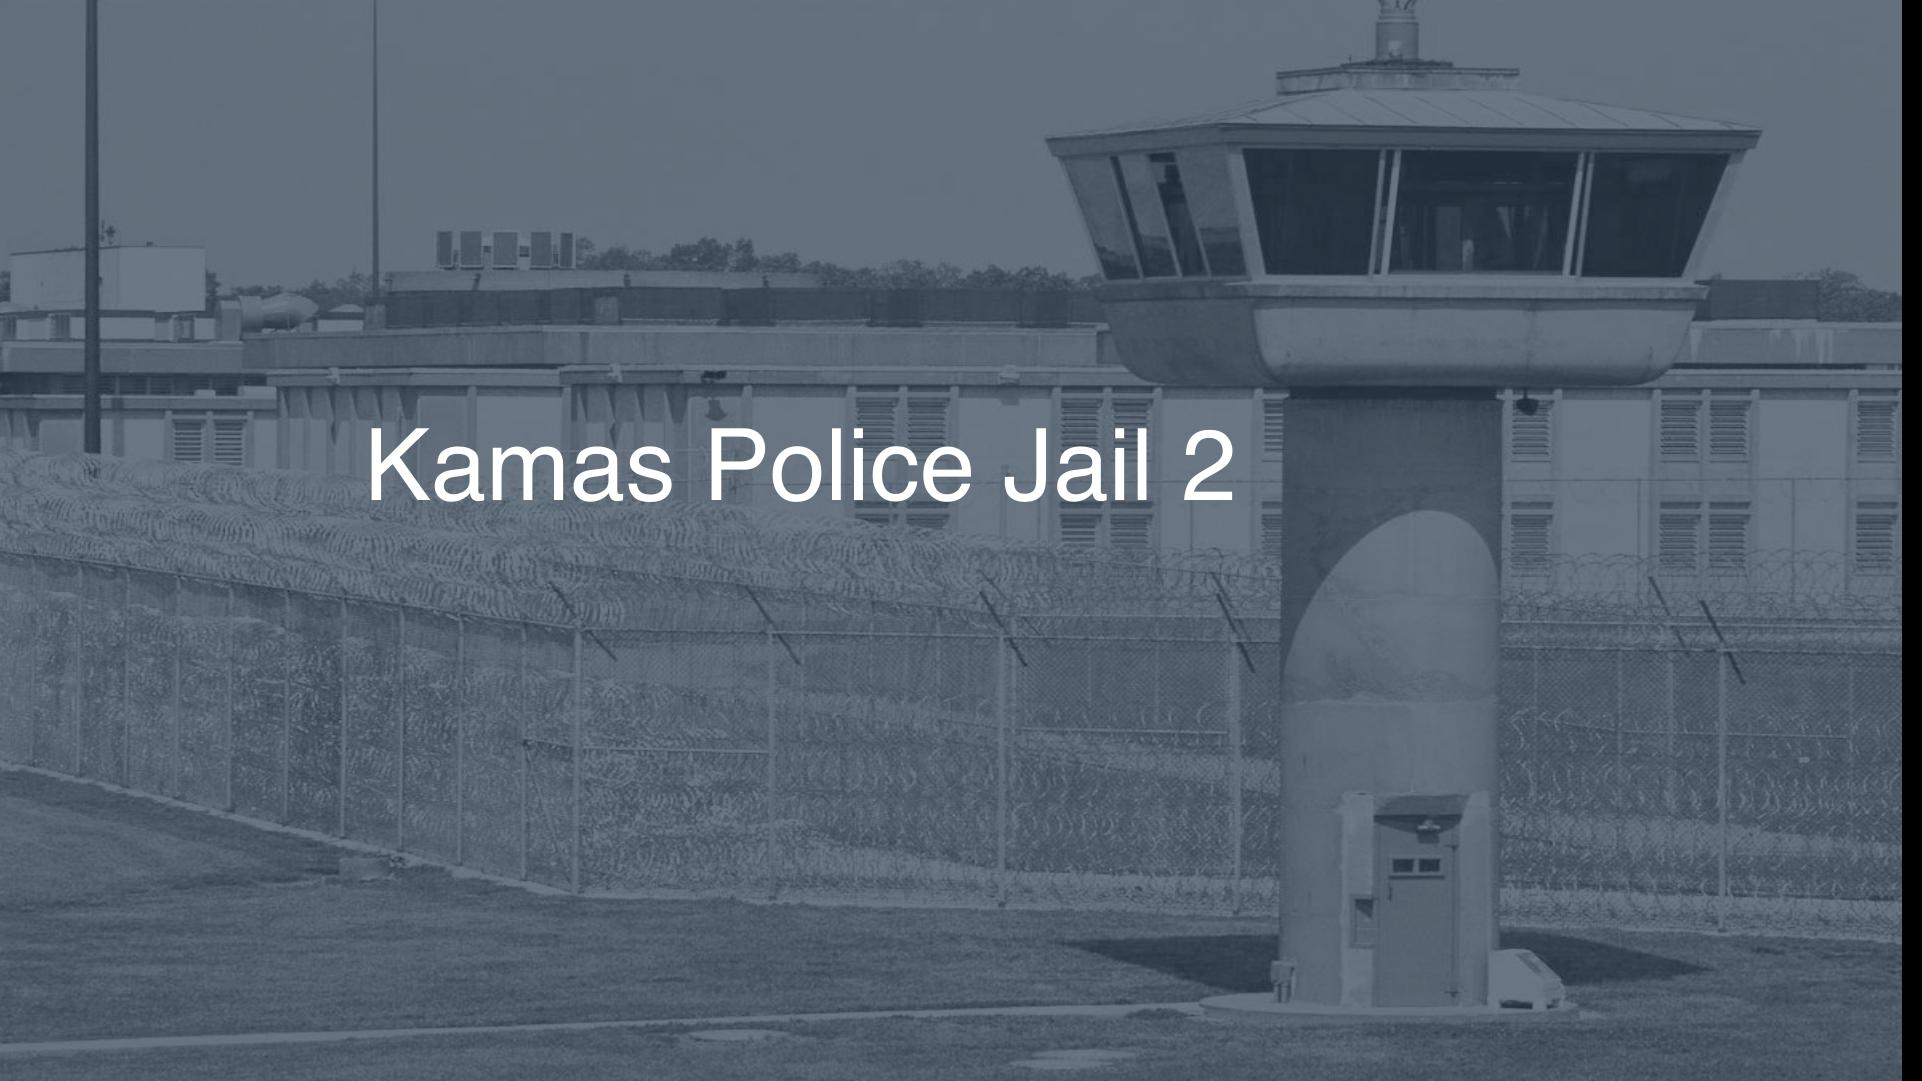 Kamas Police Jail correctional facility picture